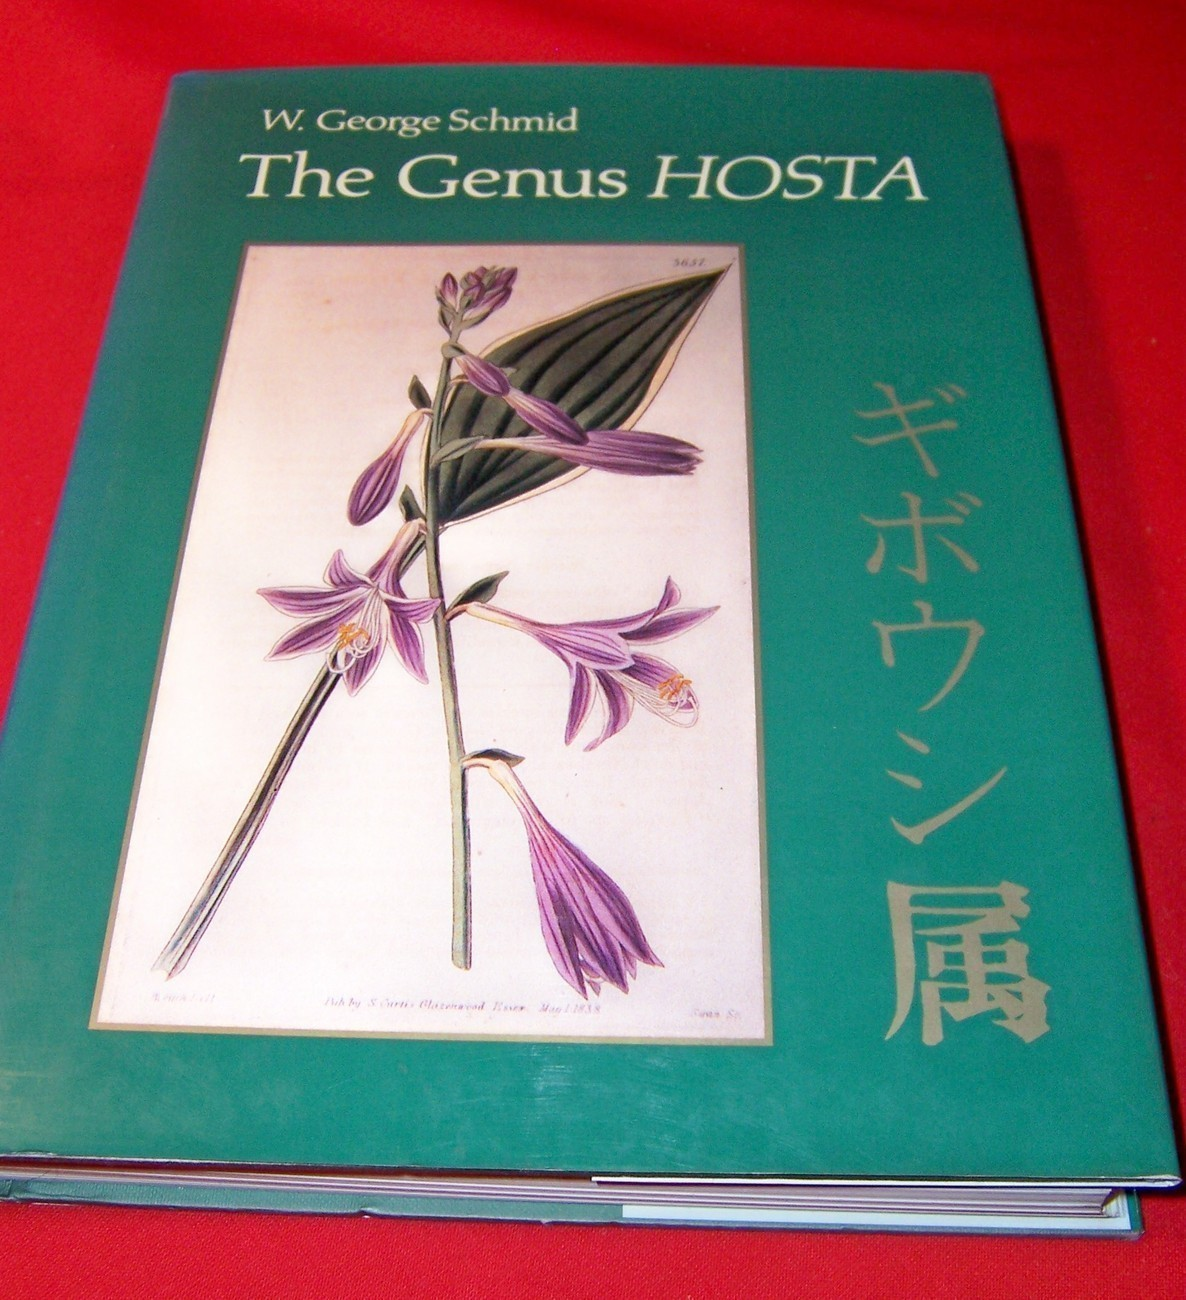 Primary image for The Genus Hosta W. George Schmid